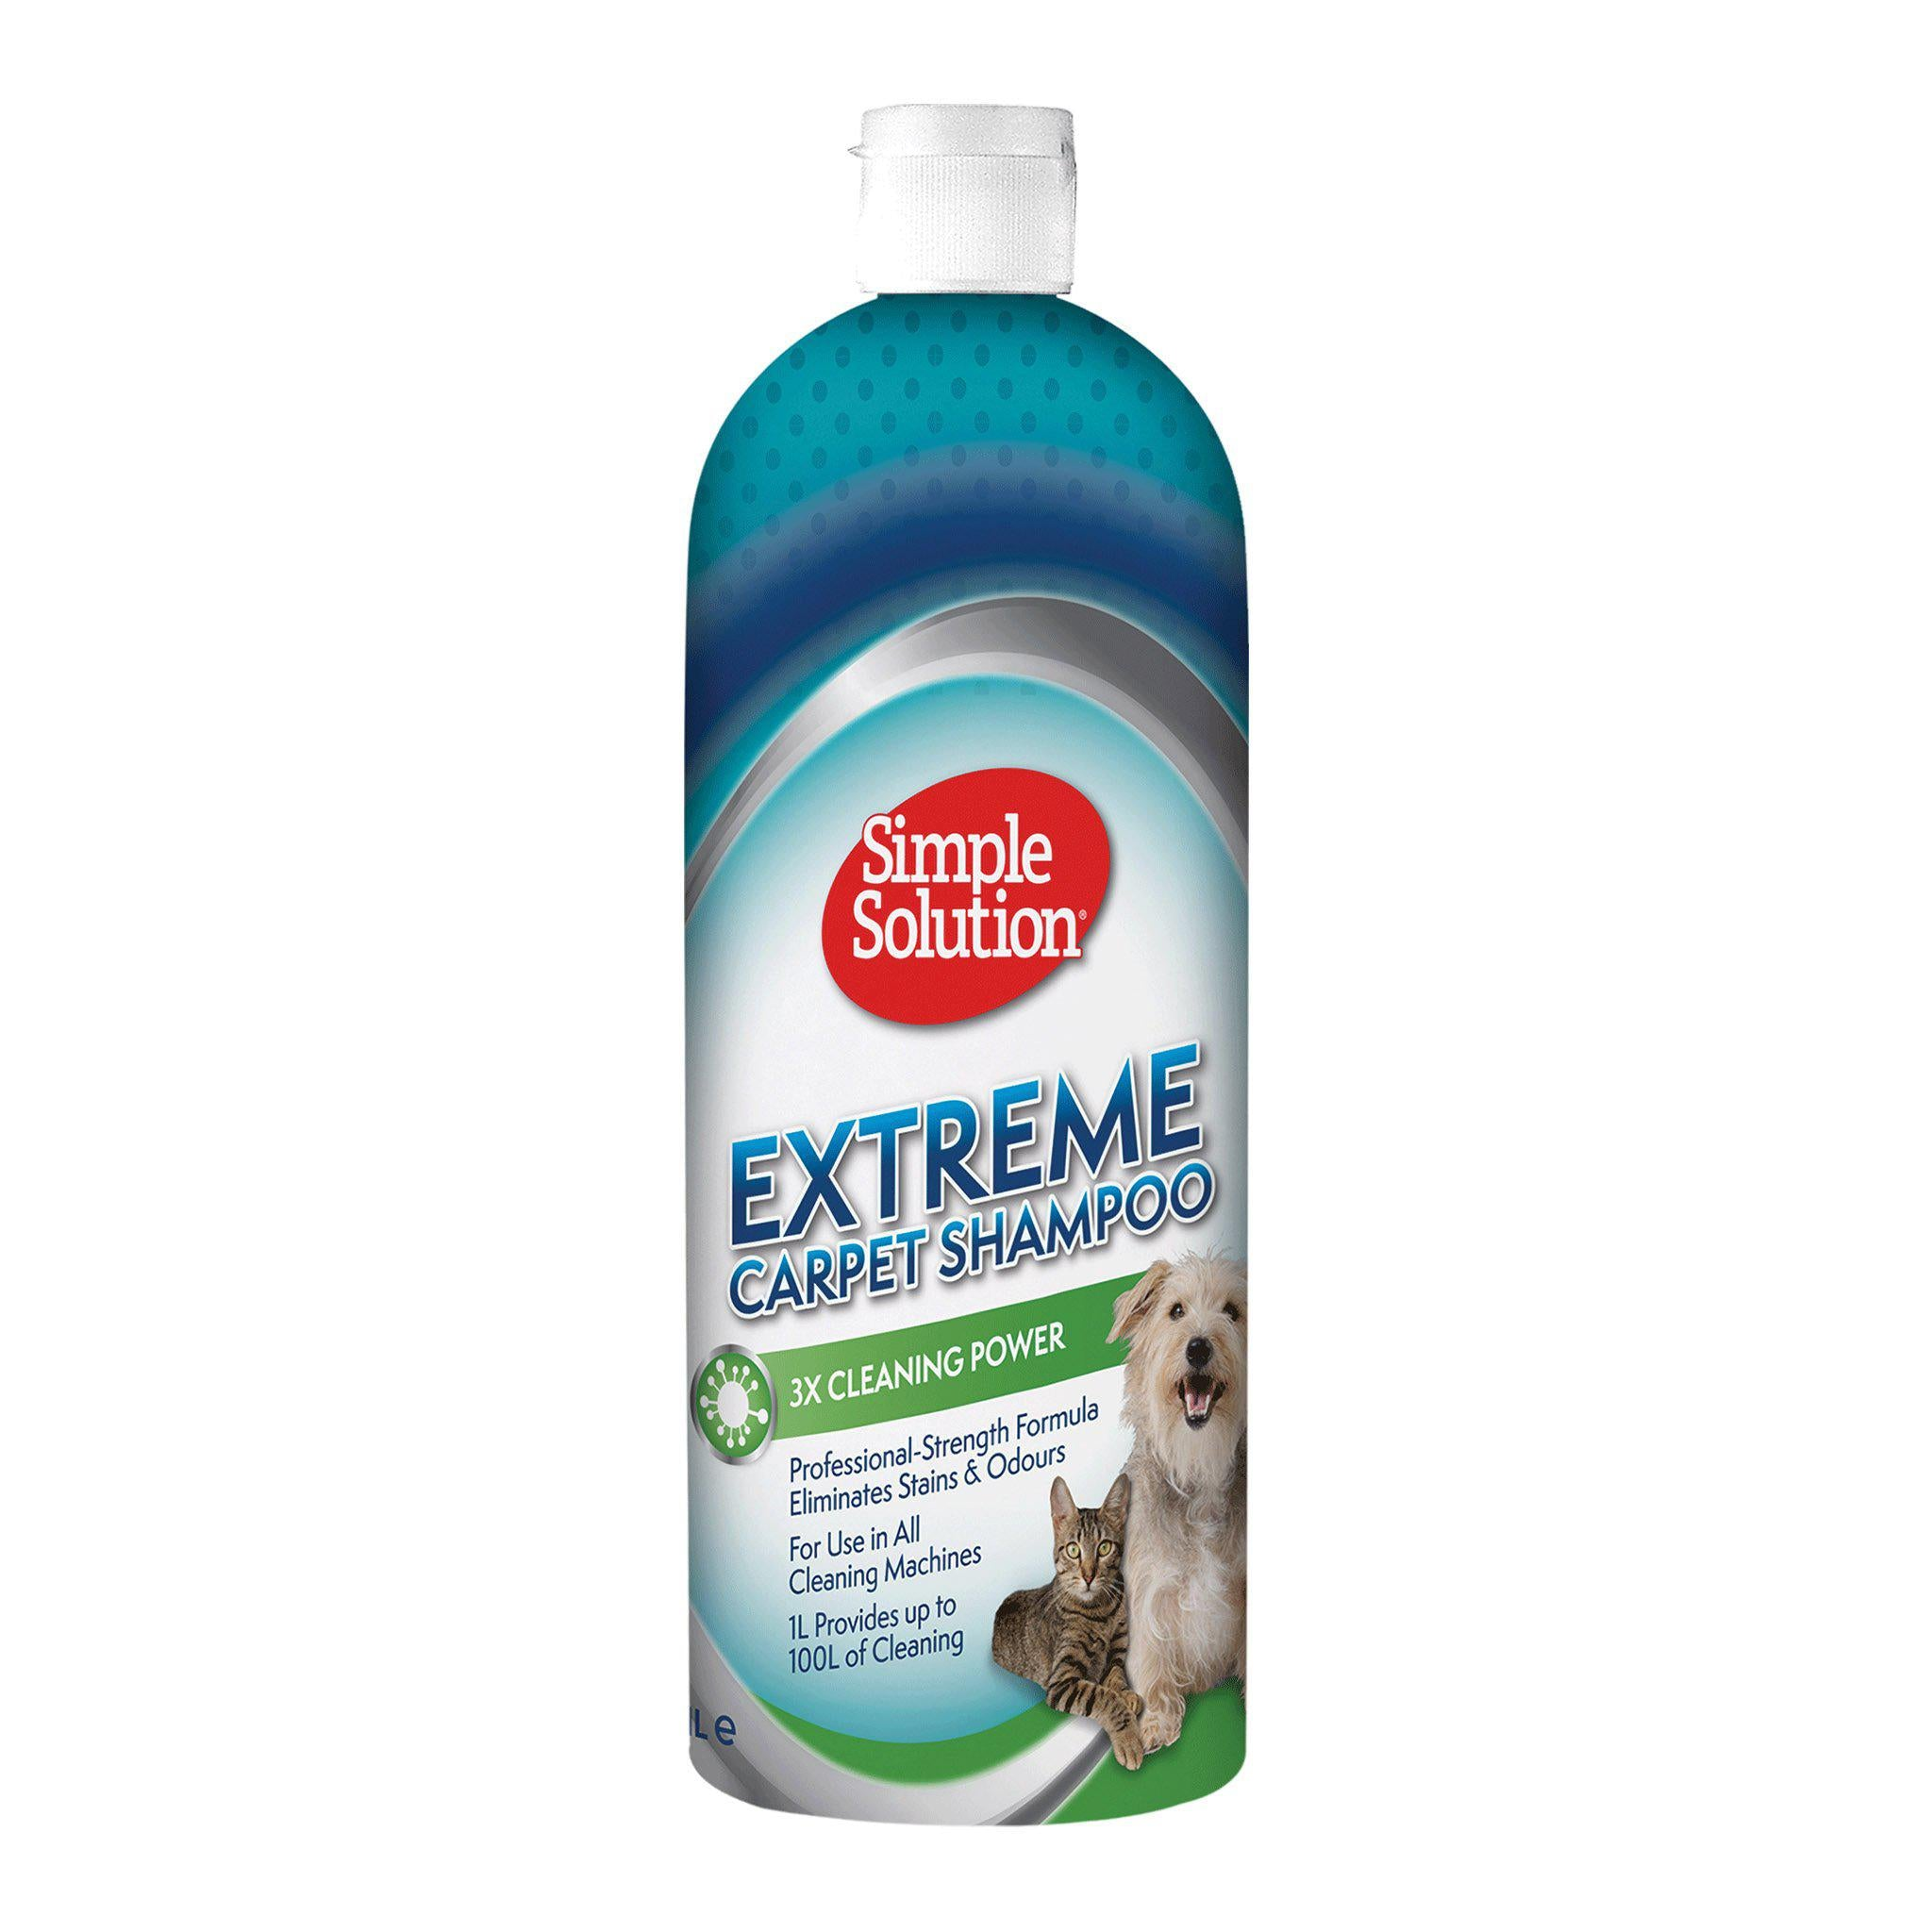 Simple Solution Extreme Carpet Shampoo 1000ml